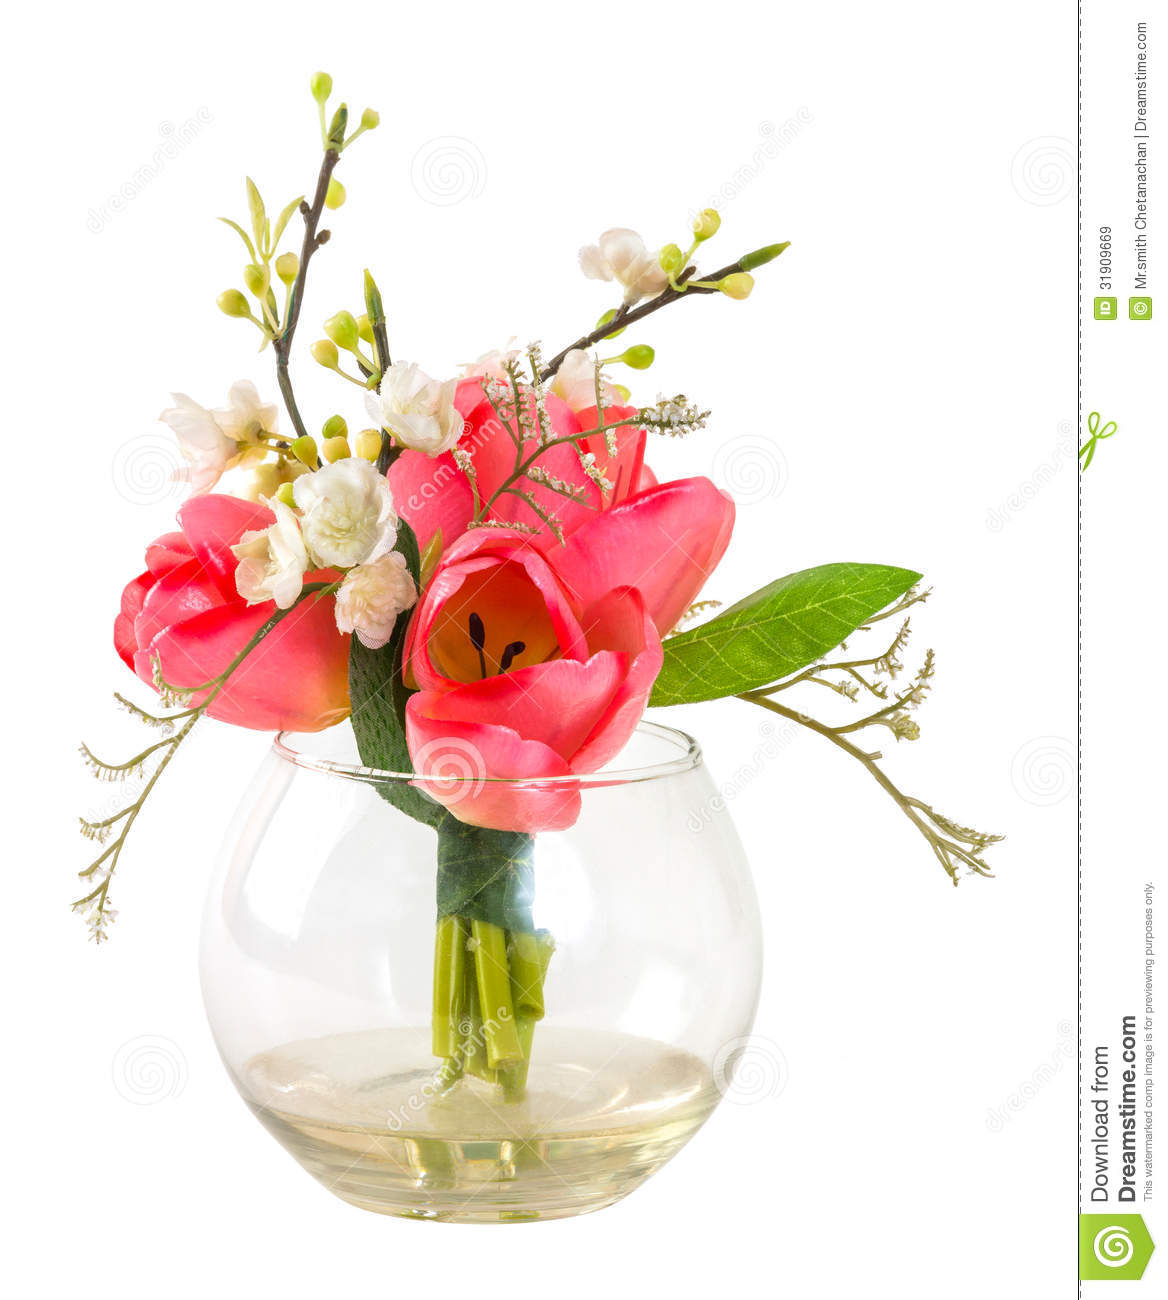 bouquet de tulipe rose dans le vase en verre images libres de droits image 31909669. Black Bedroom Furniture Sets. Home Design Ideas